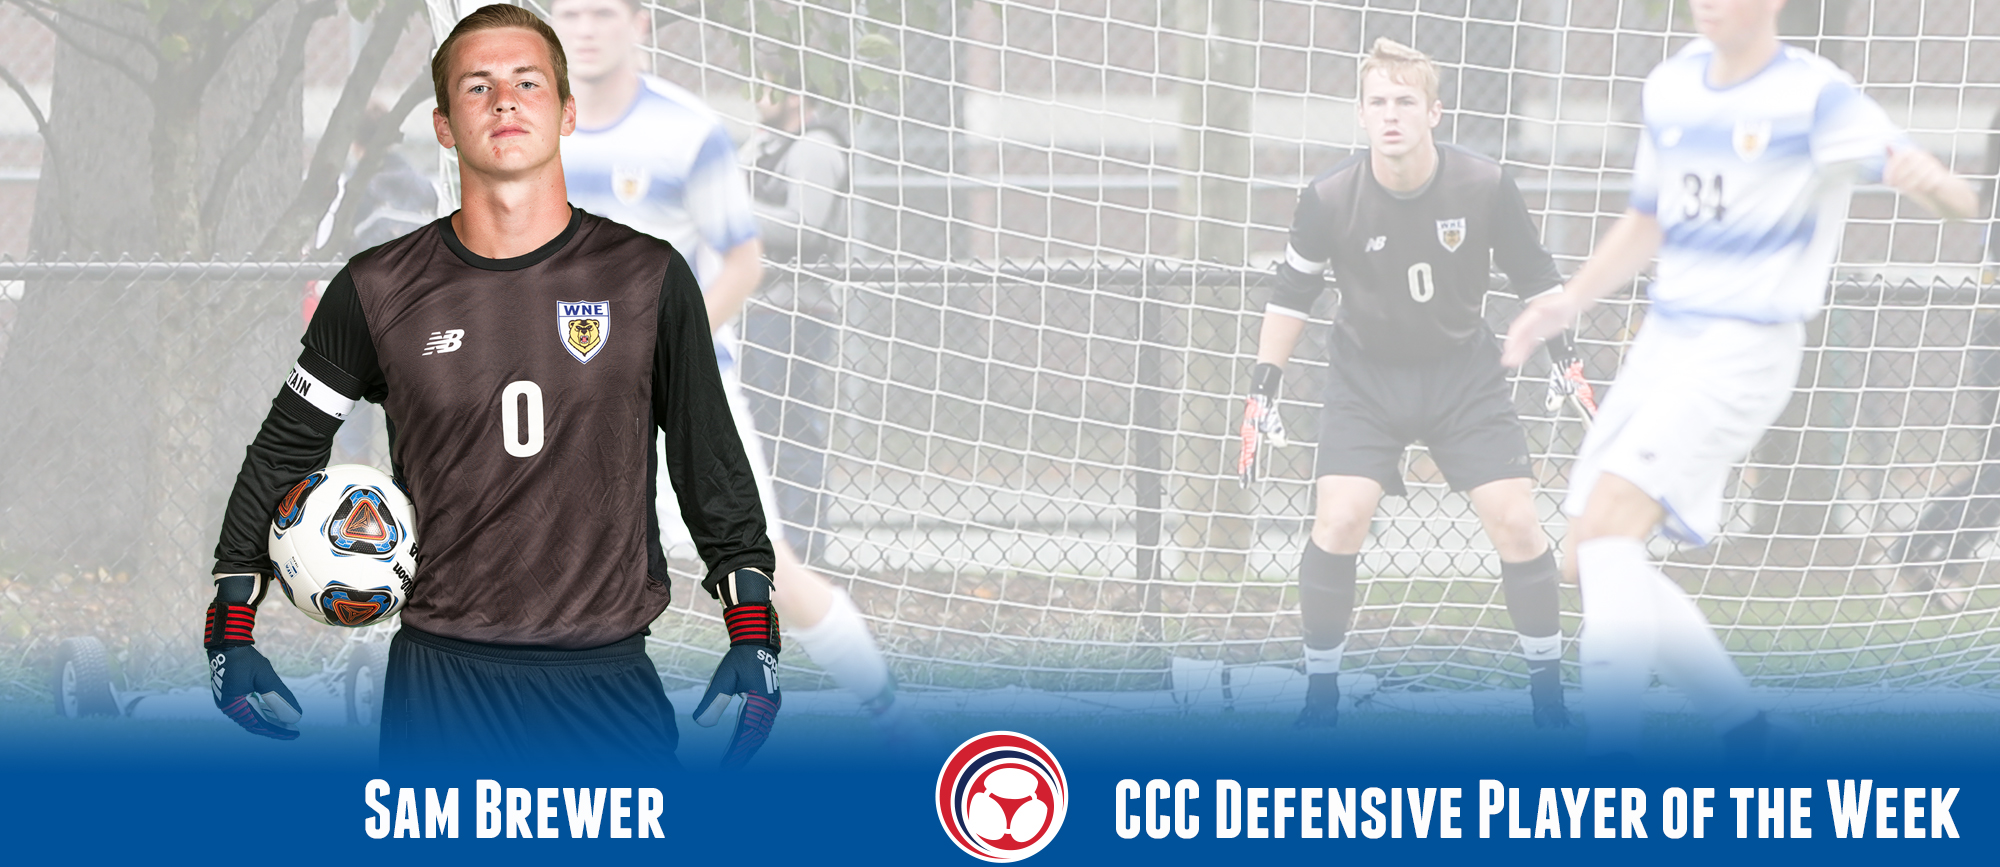 Sam Brewer Named CCC Defensive Player of the Week